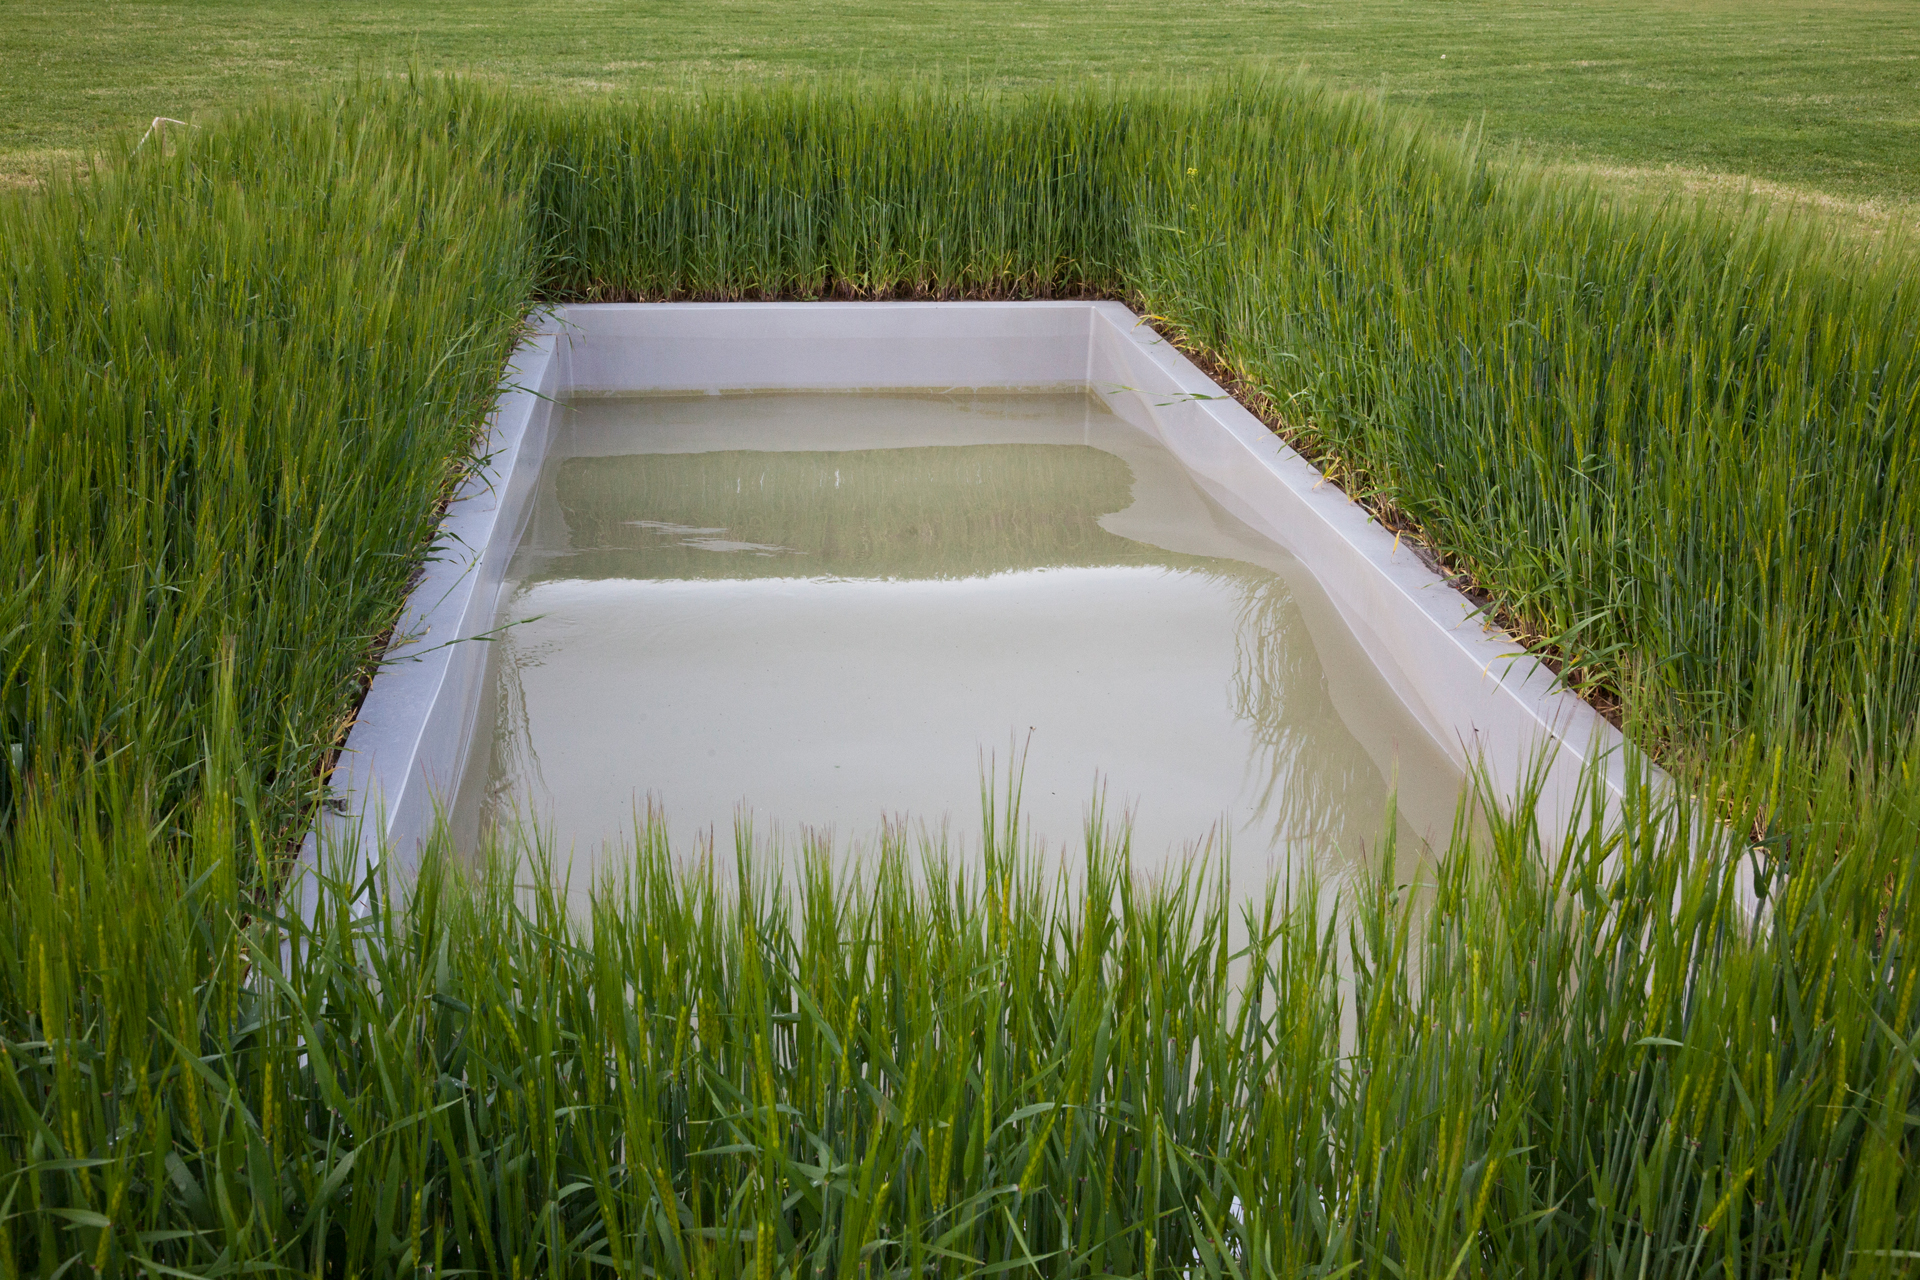 Italian artist Massimo Bartonlini creates environments of highly sensual interventions that gives the viewer contemplative, or subtly disturbing experiences, such as the work Untitled (Wave) for dOCUMENTA(13). It is a rectangular pool filled embedded in the ground, filled with water and surrounded by barley. In it a wave sways rhythmically back and forth, its constantly changing shape set in motion by a silent motor.  Kassel, Germany